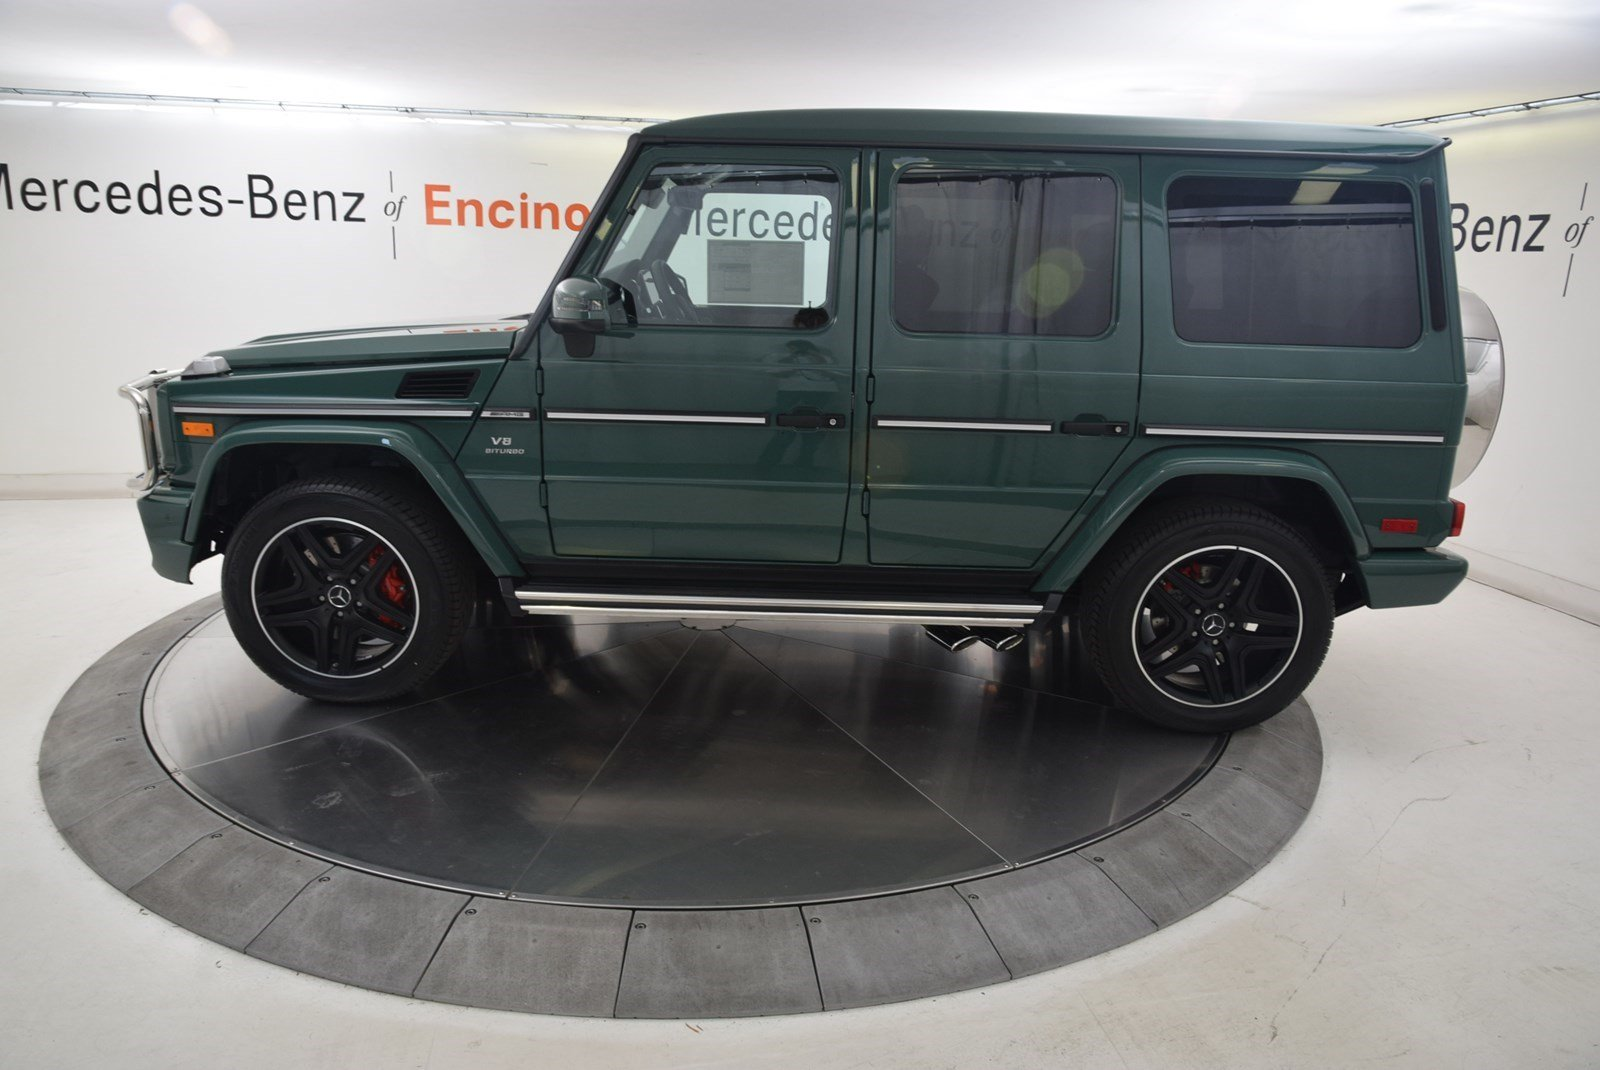 New 2018 Mercedes Benz G Class Amg G 63 Suv Suv In Encino 58546